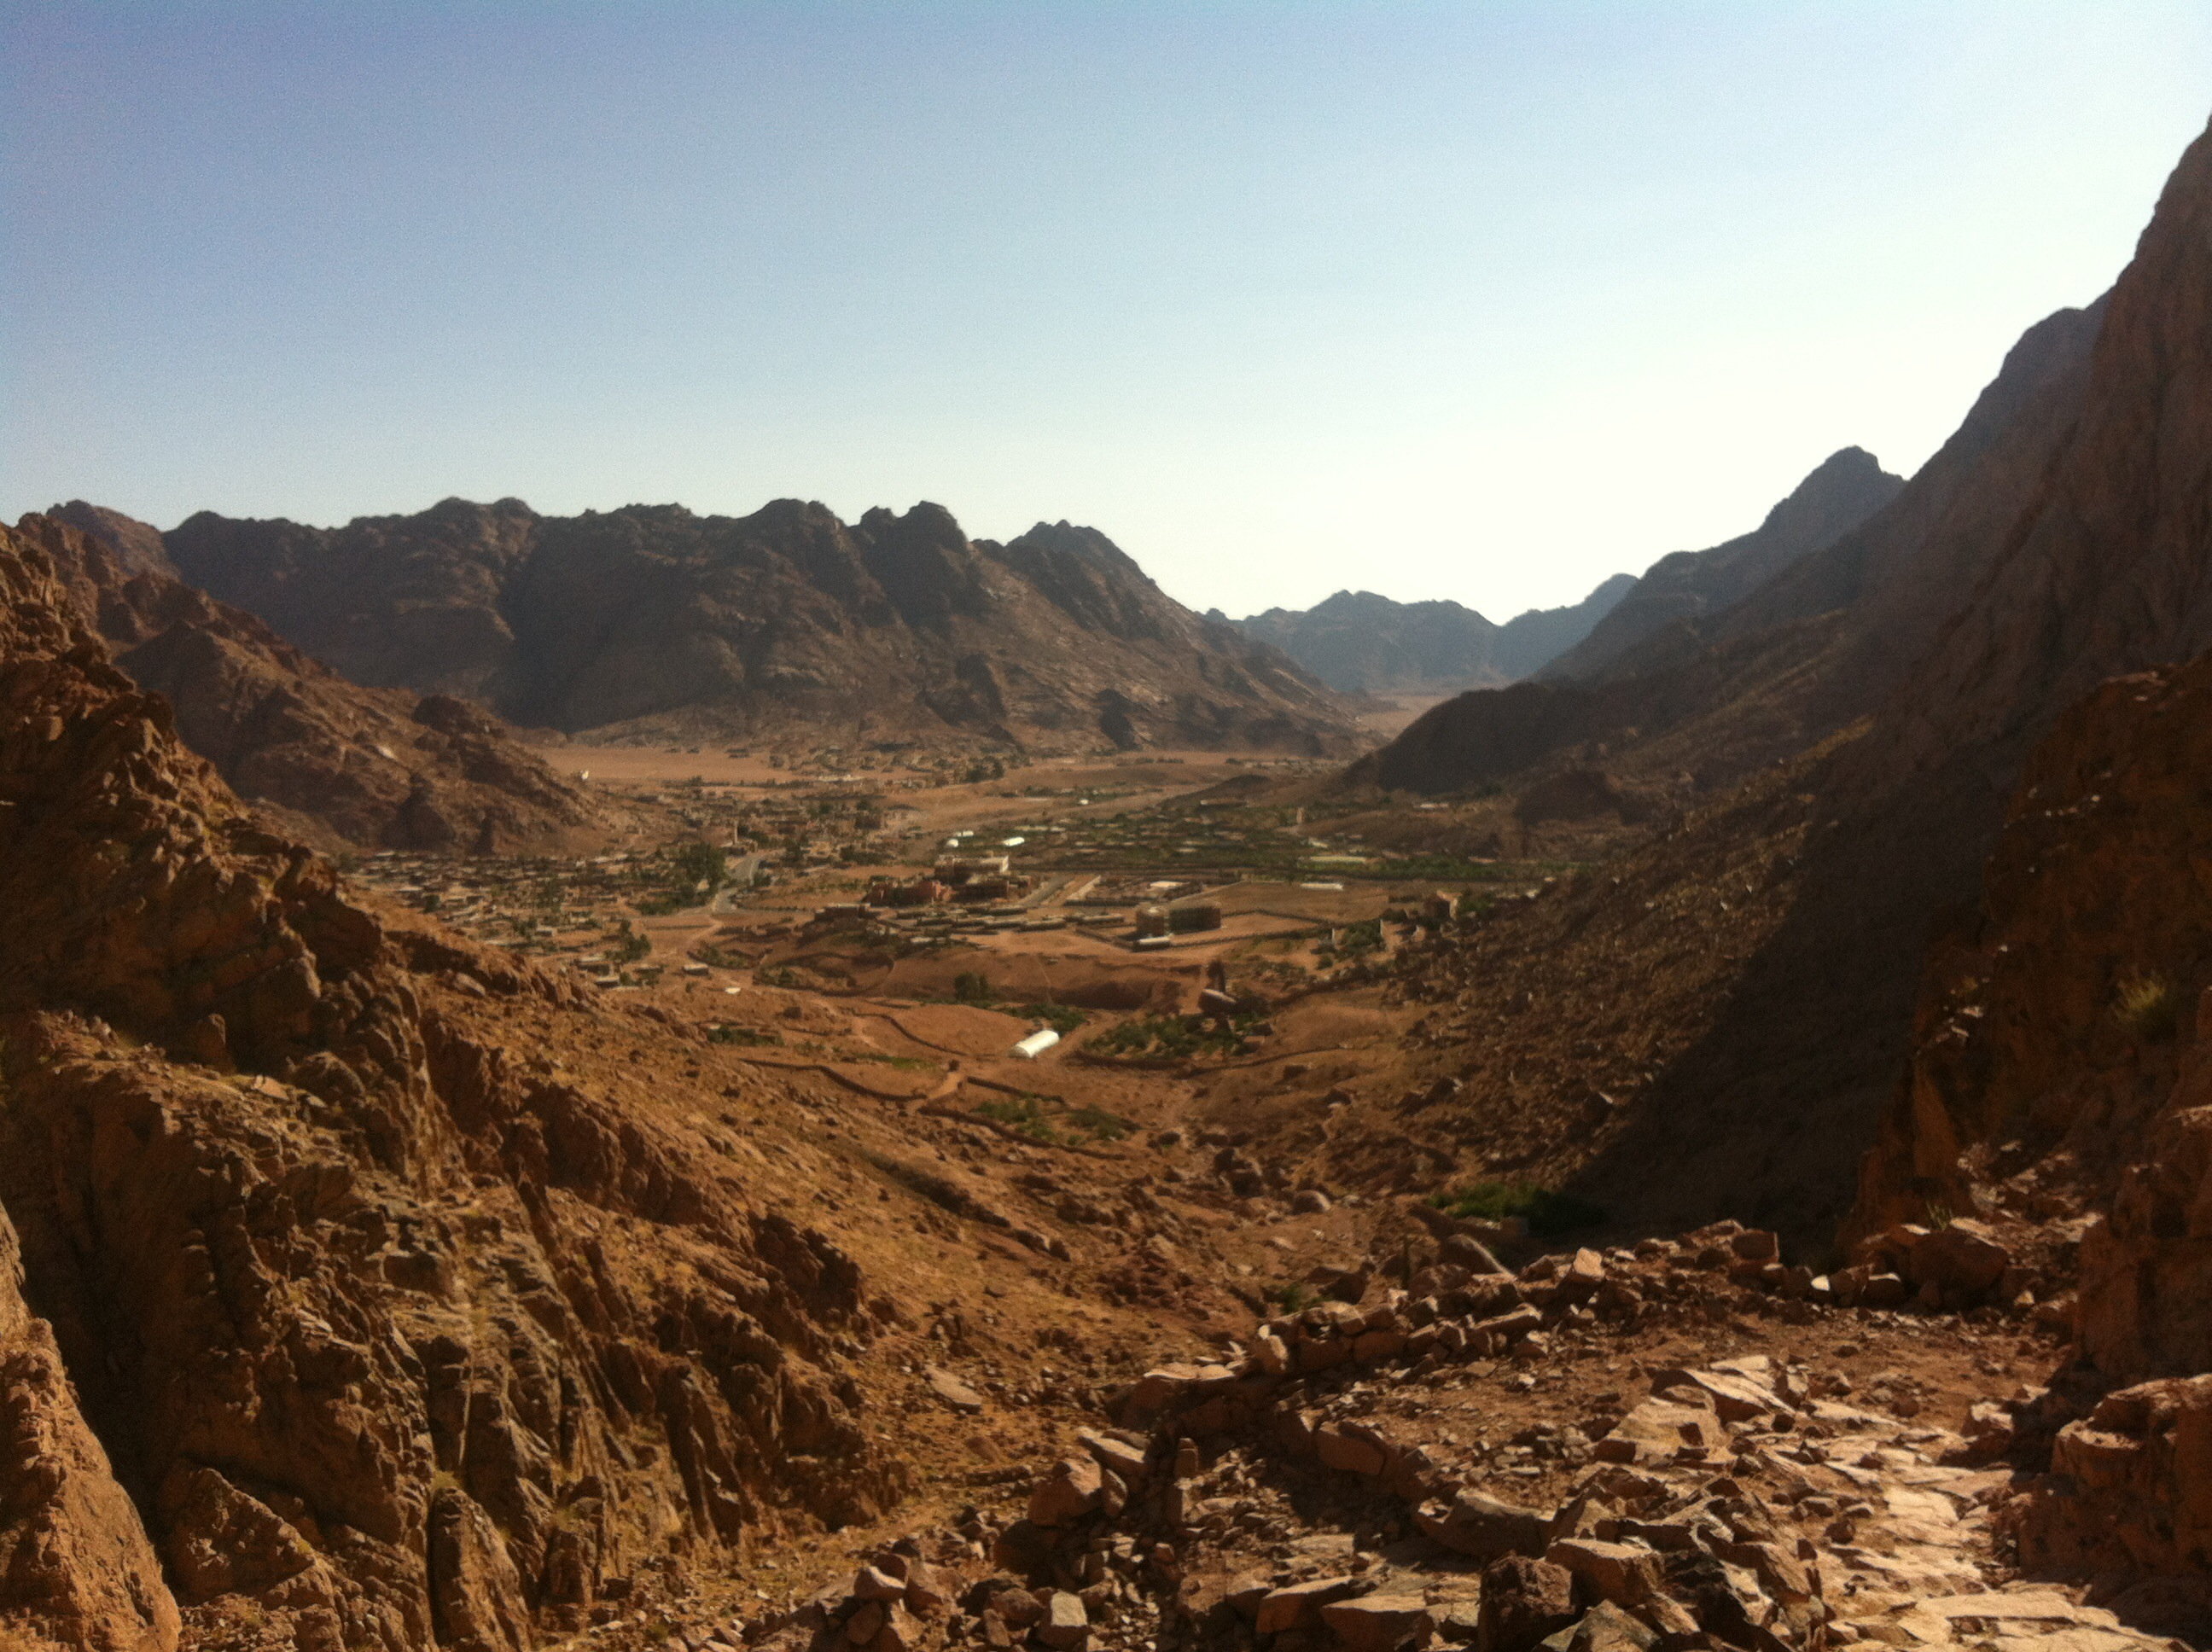 Mountain view of Saint Catherine village in Sinai. (Photo by Eduard Cousin)